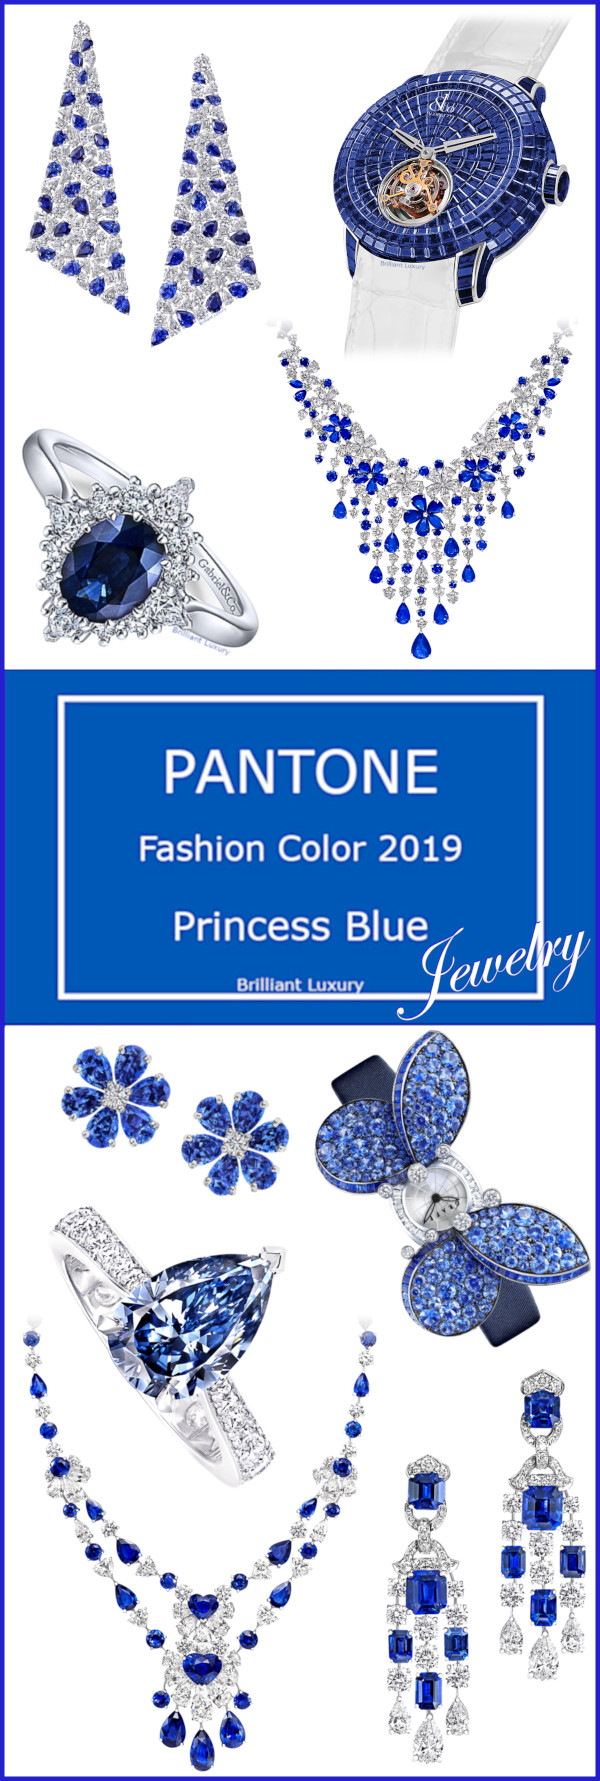 Pantone Princess Blue Jewelry Collection